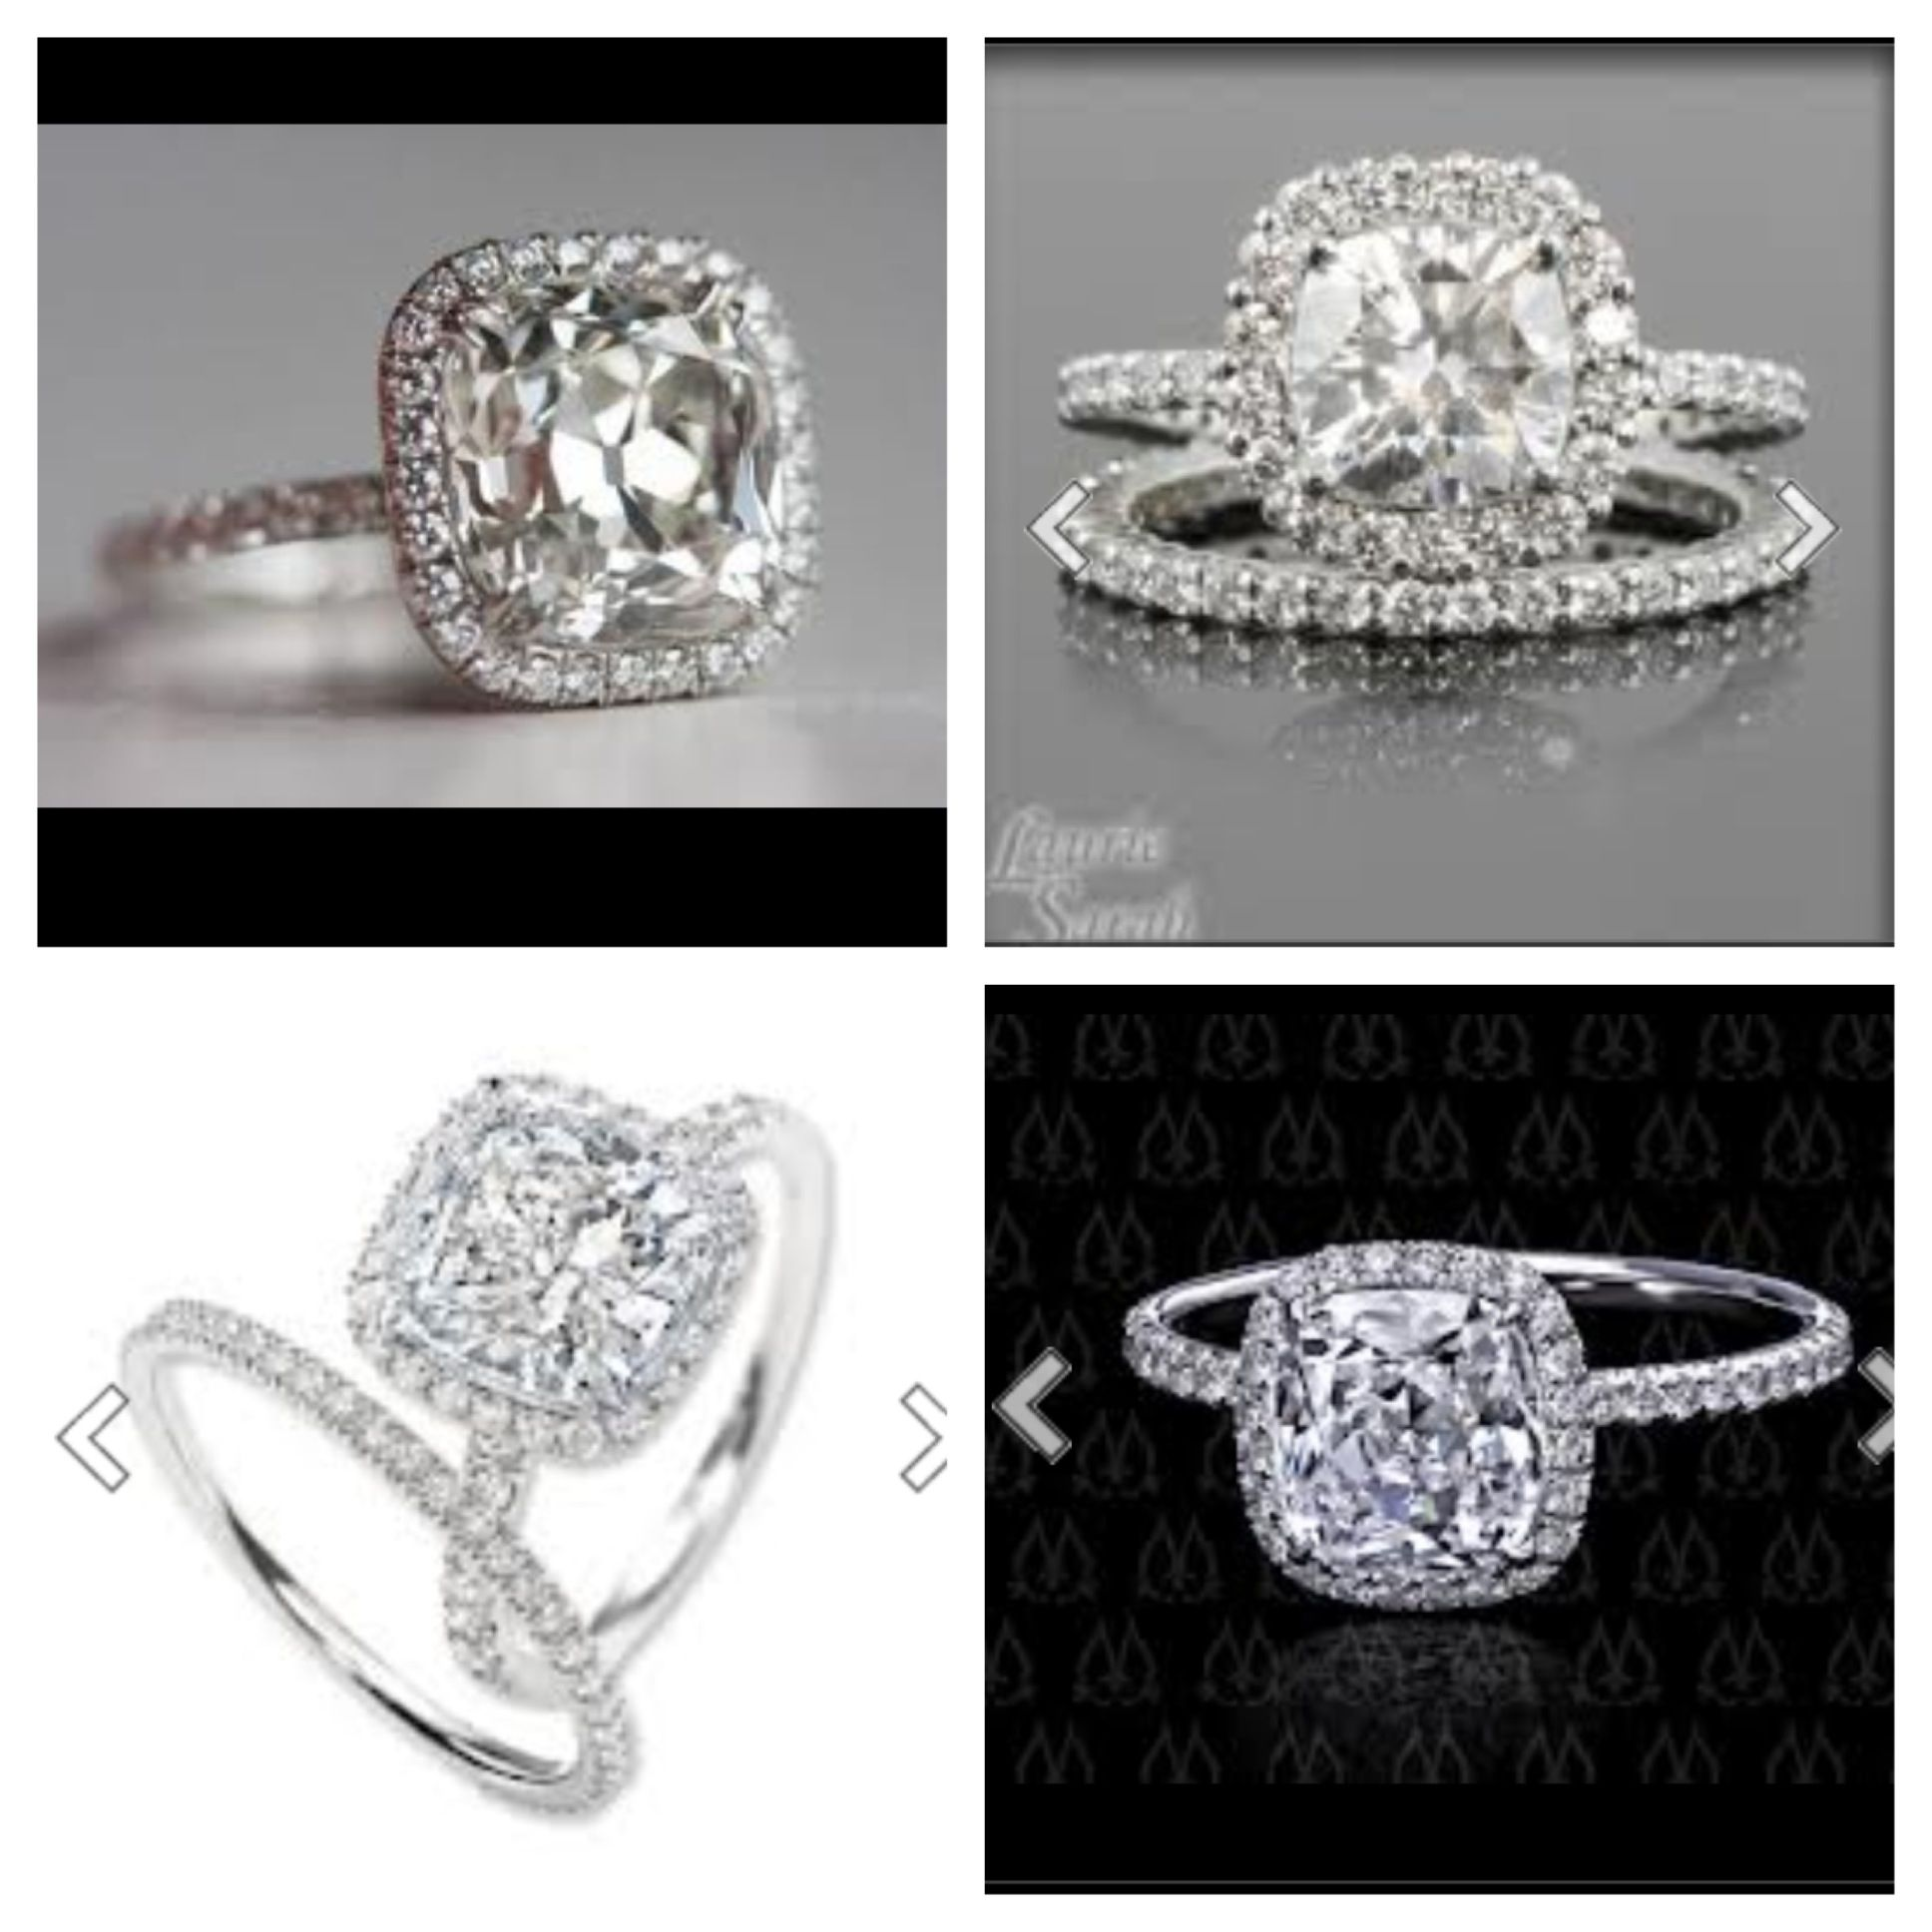 Cushion Cut Or Round Diamond In A Halo Setting With Thin Band